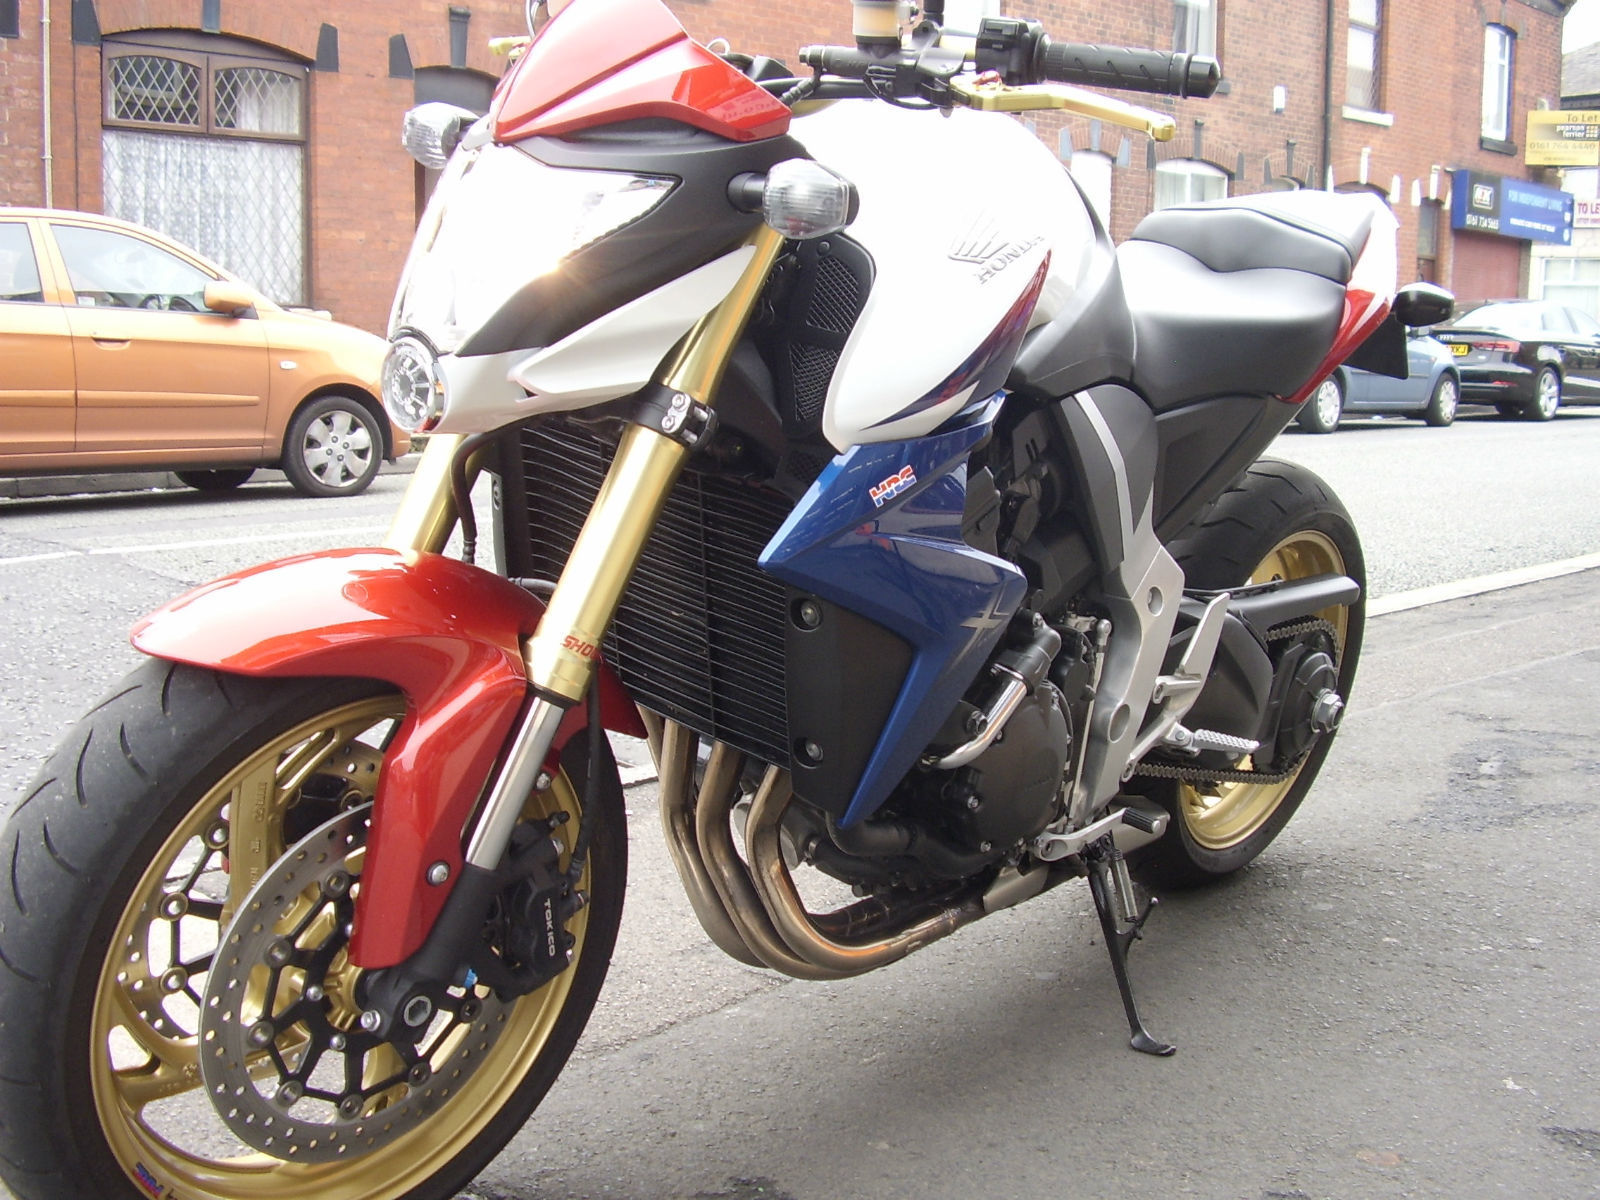 2012 Honda CB 1000 R Extreme HRC ABS Naked Motorcycle 268